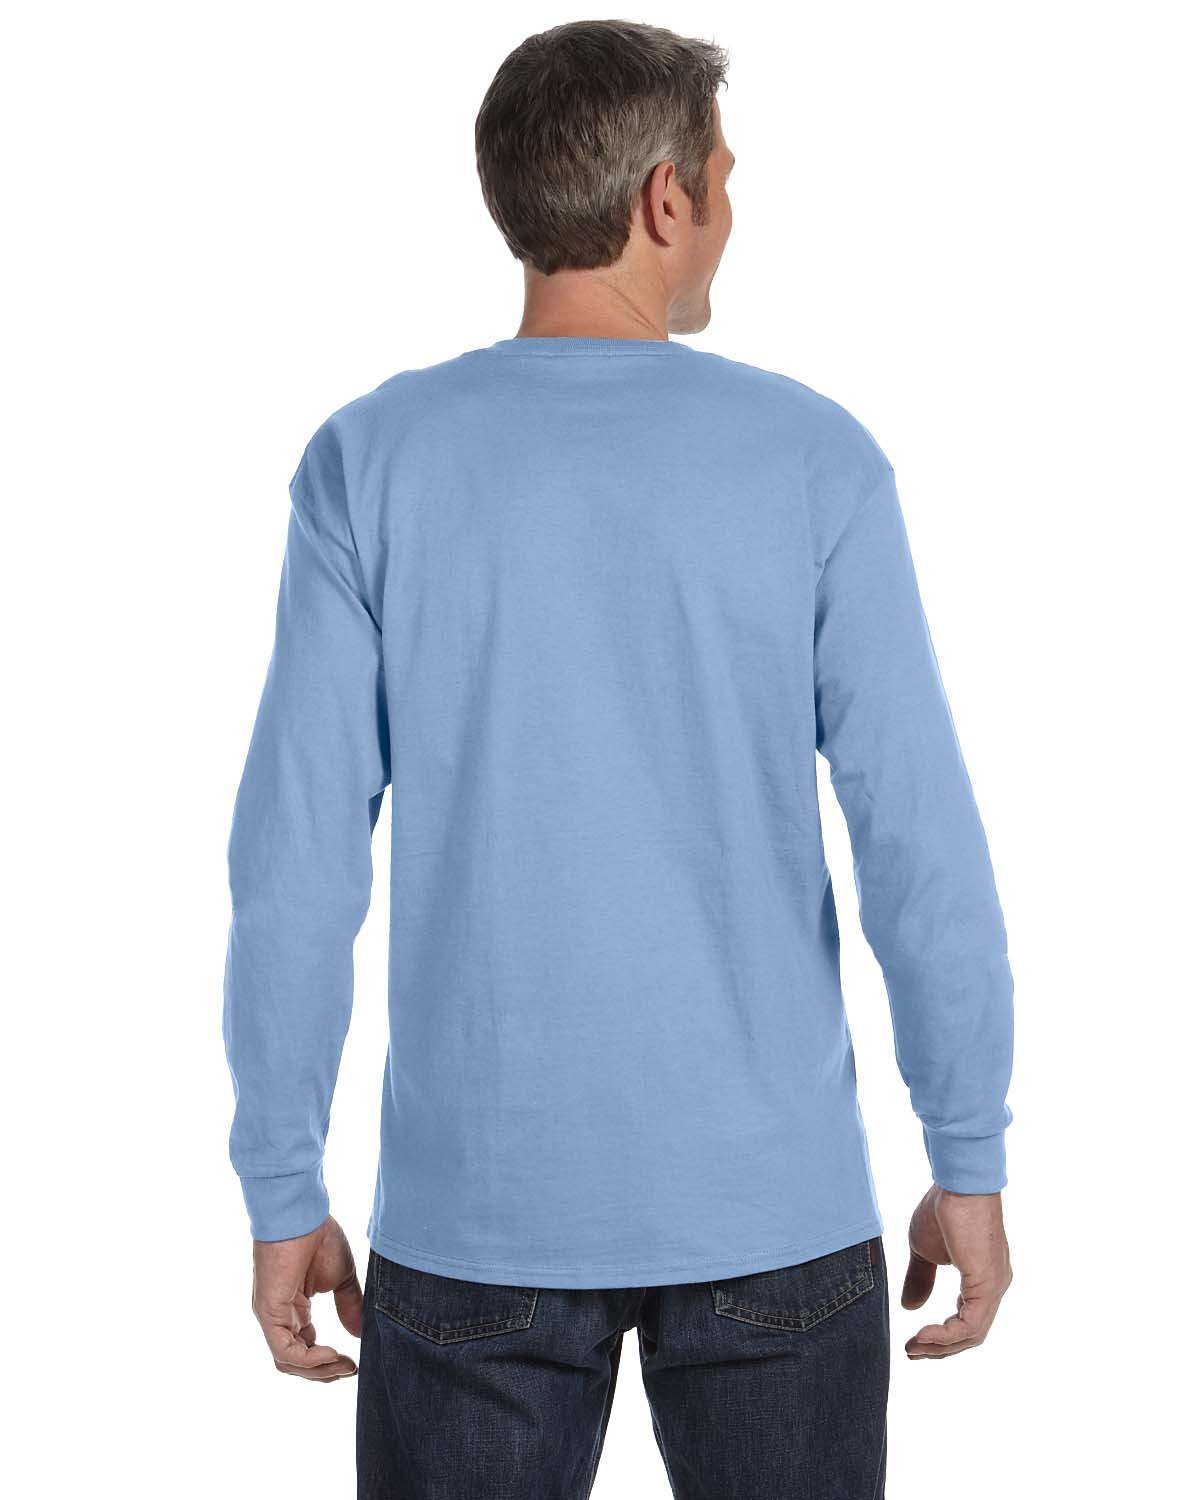 5586 Hanes LIGHT BLUE